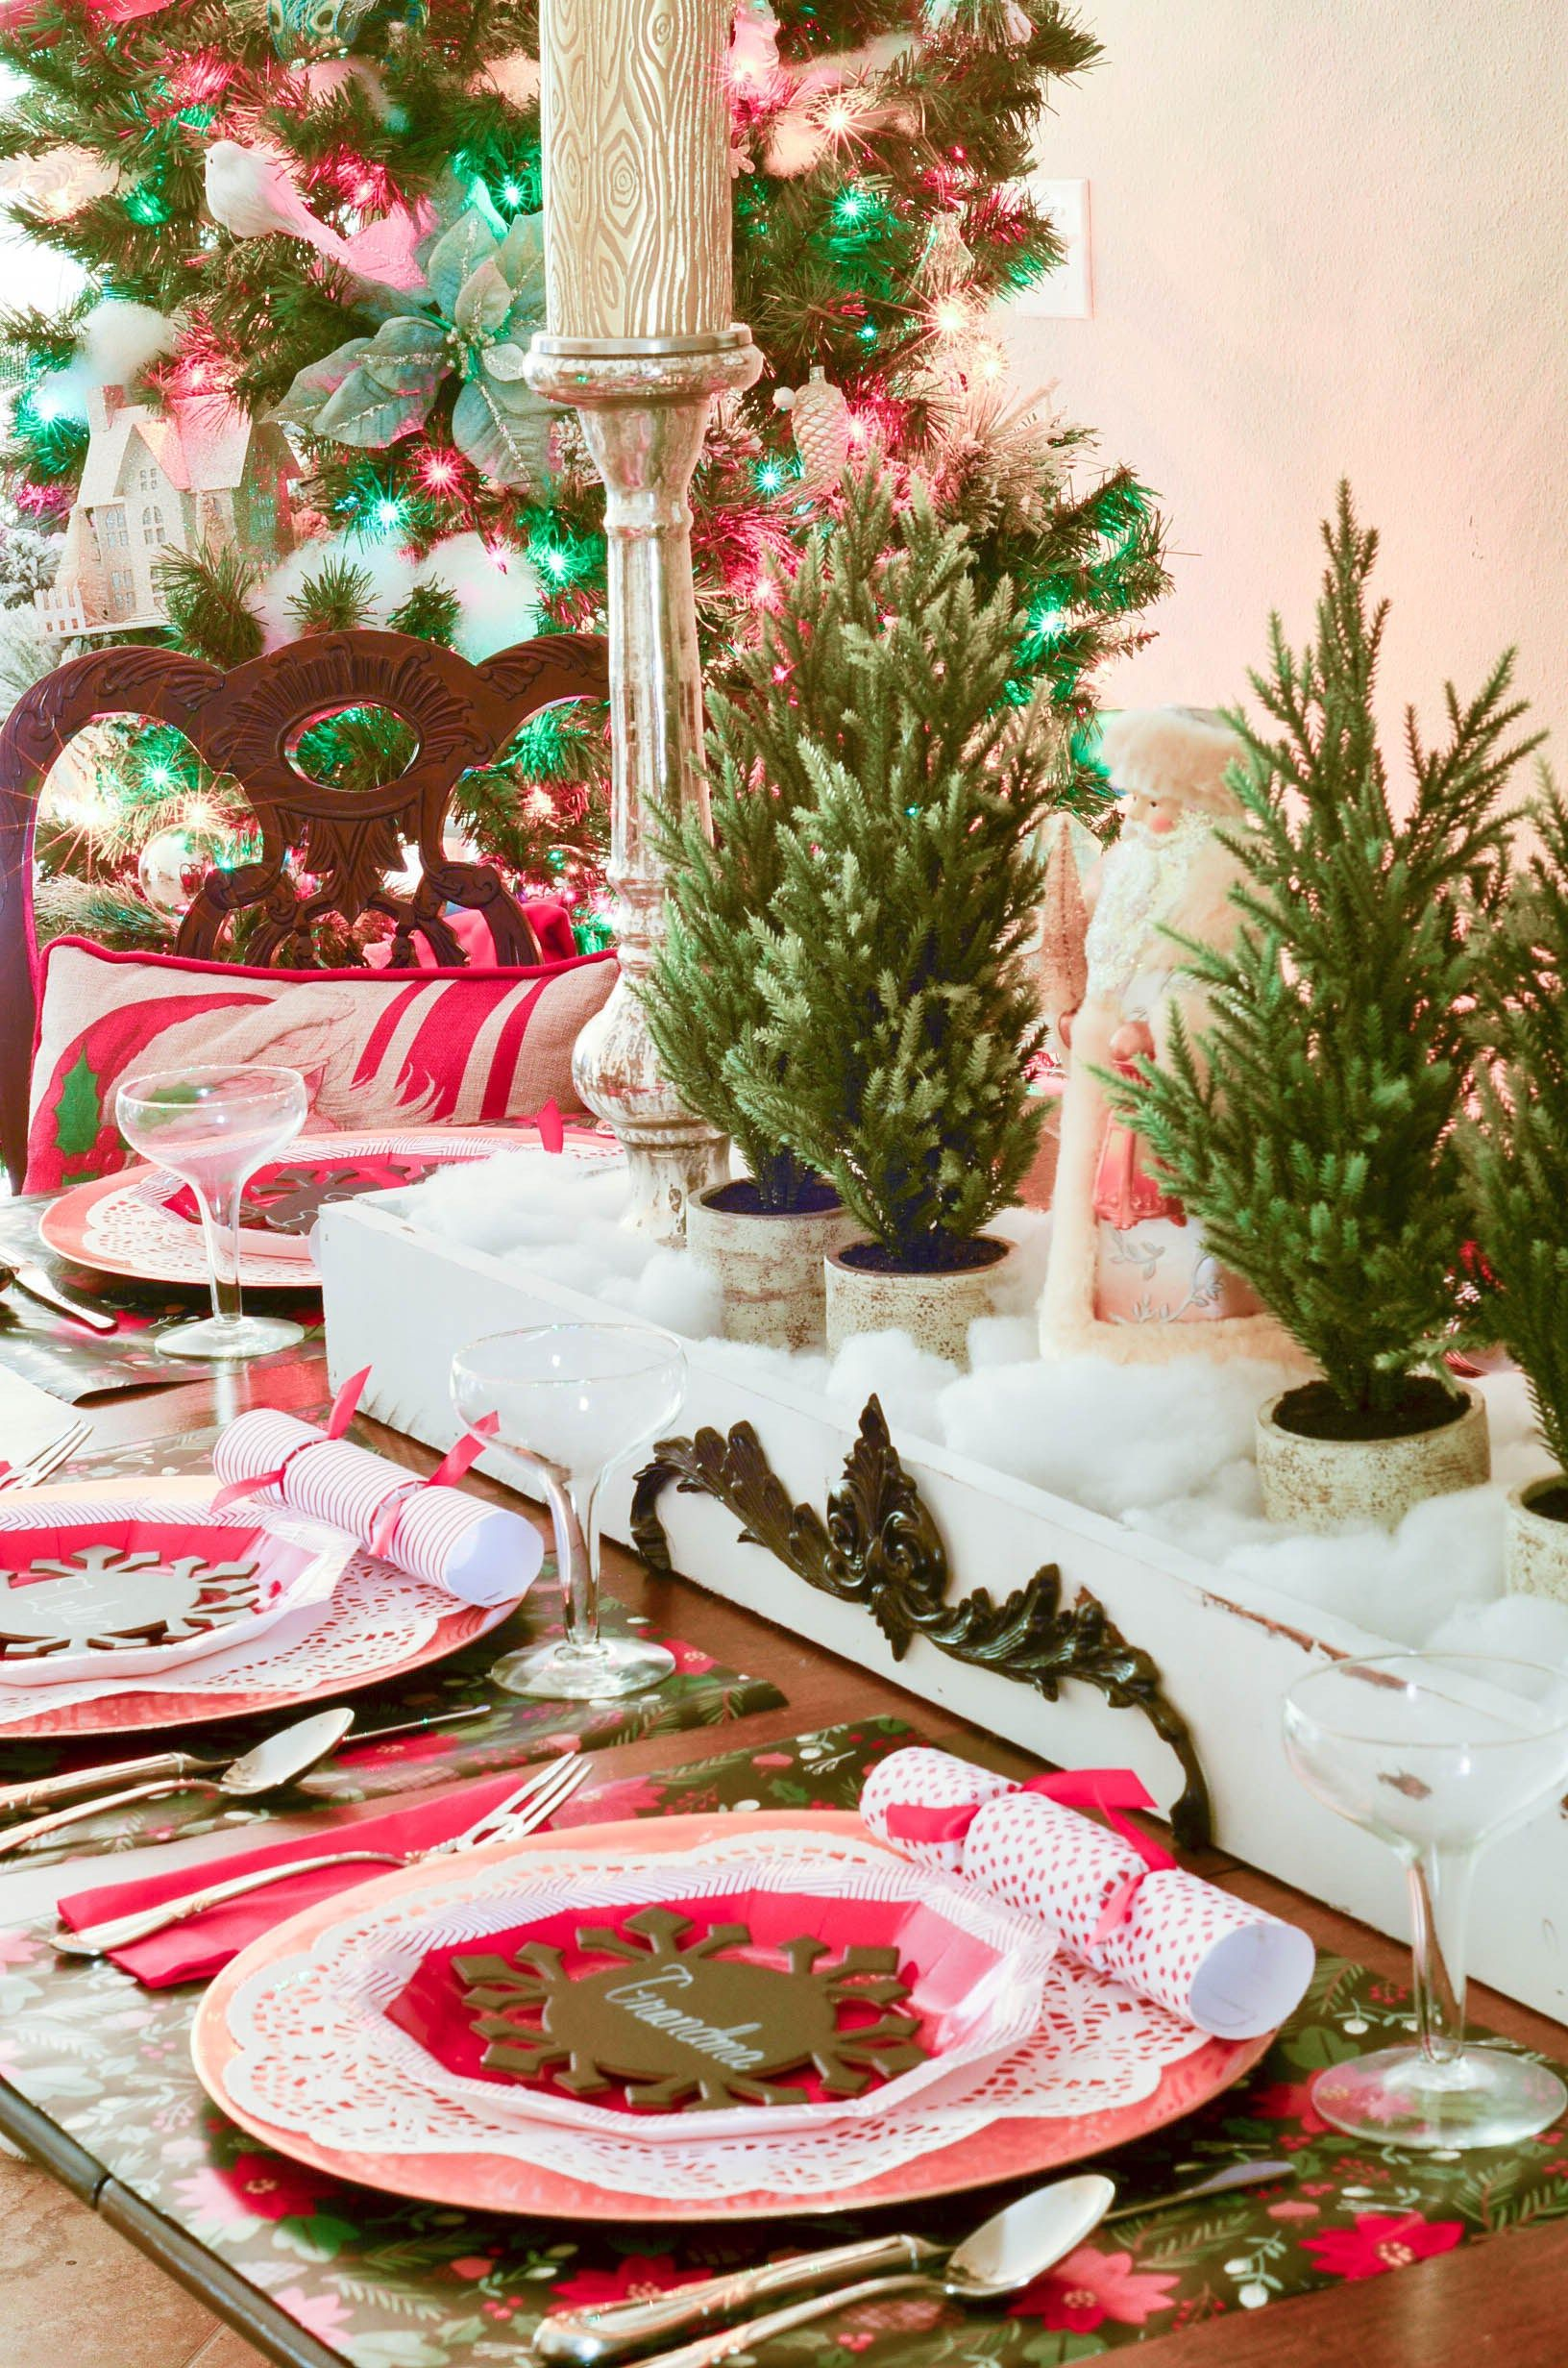 Edit-Paper-Plate-Christmas-Tablescape-Slightly-Coastal-Wrapping- & Edit-Paper-Plate-Christmas-Tablescape-Slightly-Coastal-Wrapping ...